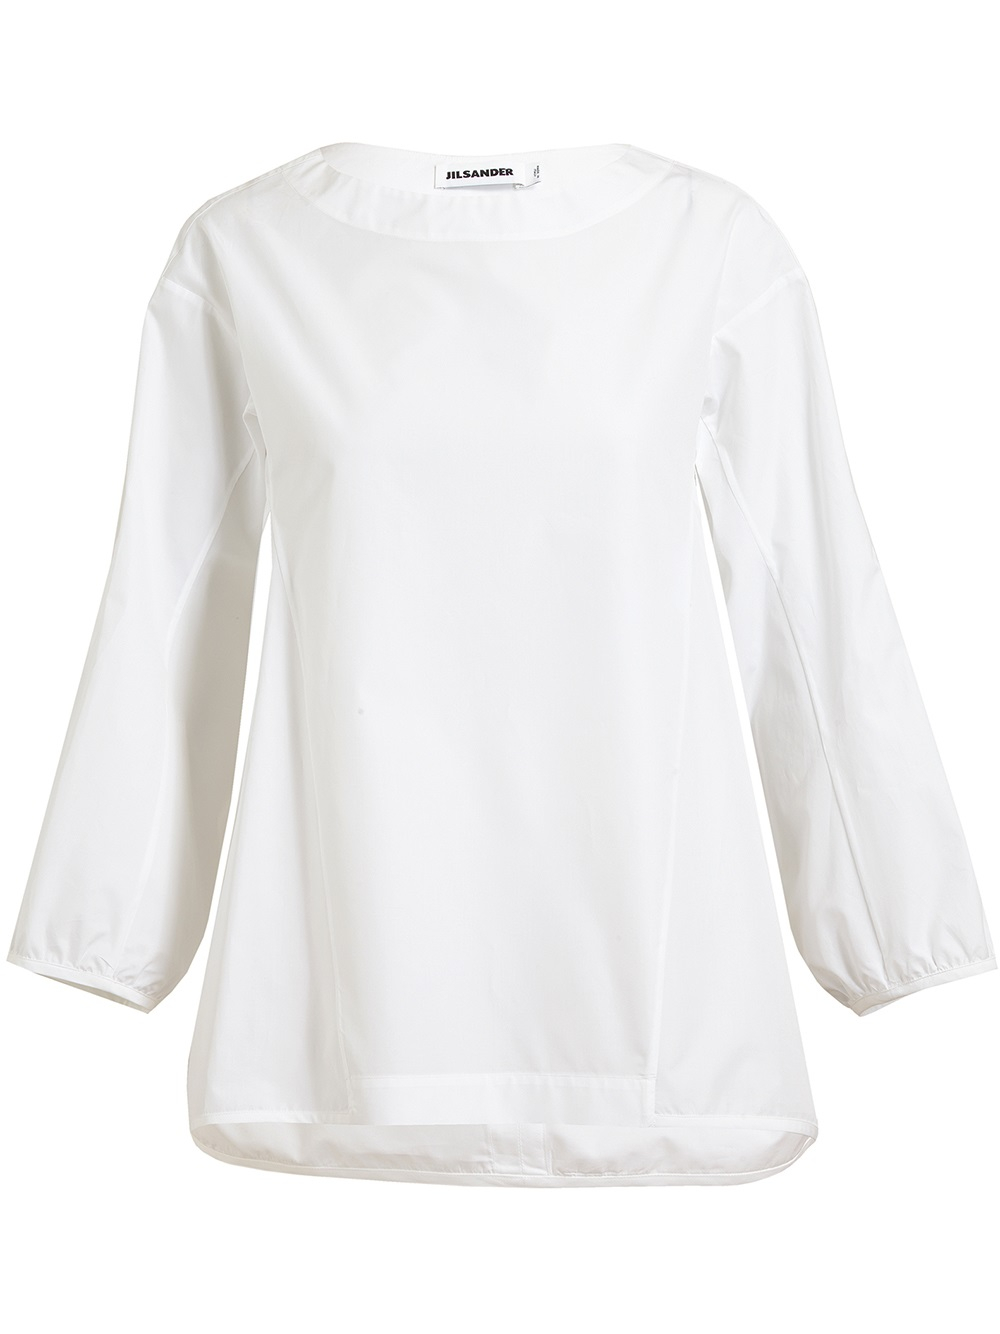 Cotton and silk top Jil Sander 100% Guaranteed For Sale Free Shipping Geniue Stockist Free Shipping High Quality 2018 Cool Discount Amazing Price urrQoC